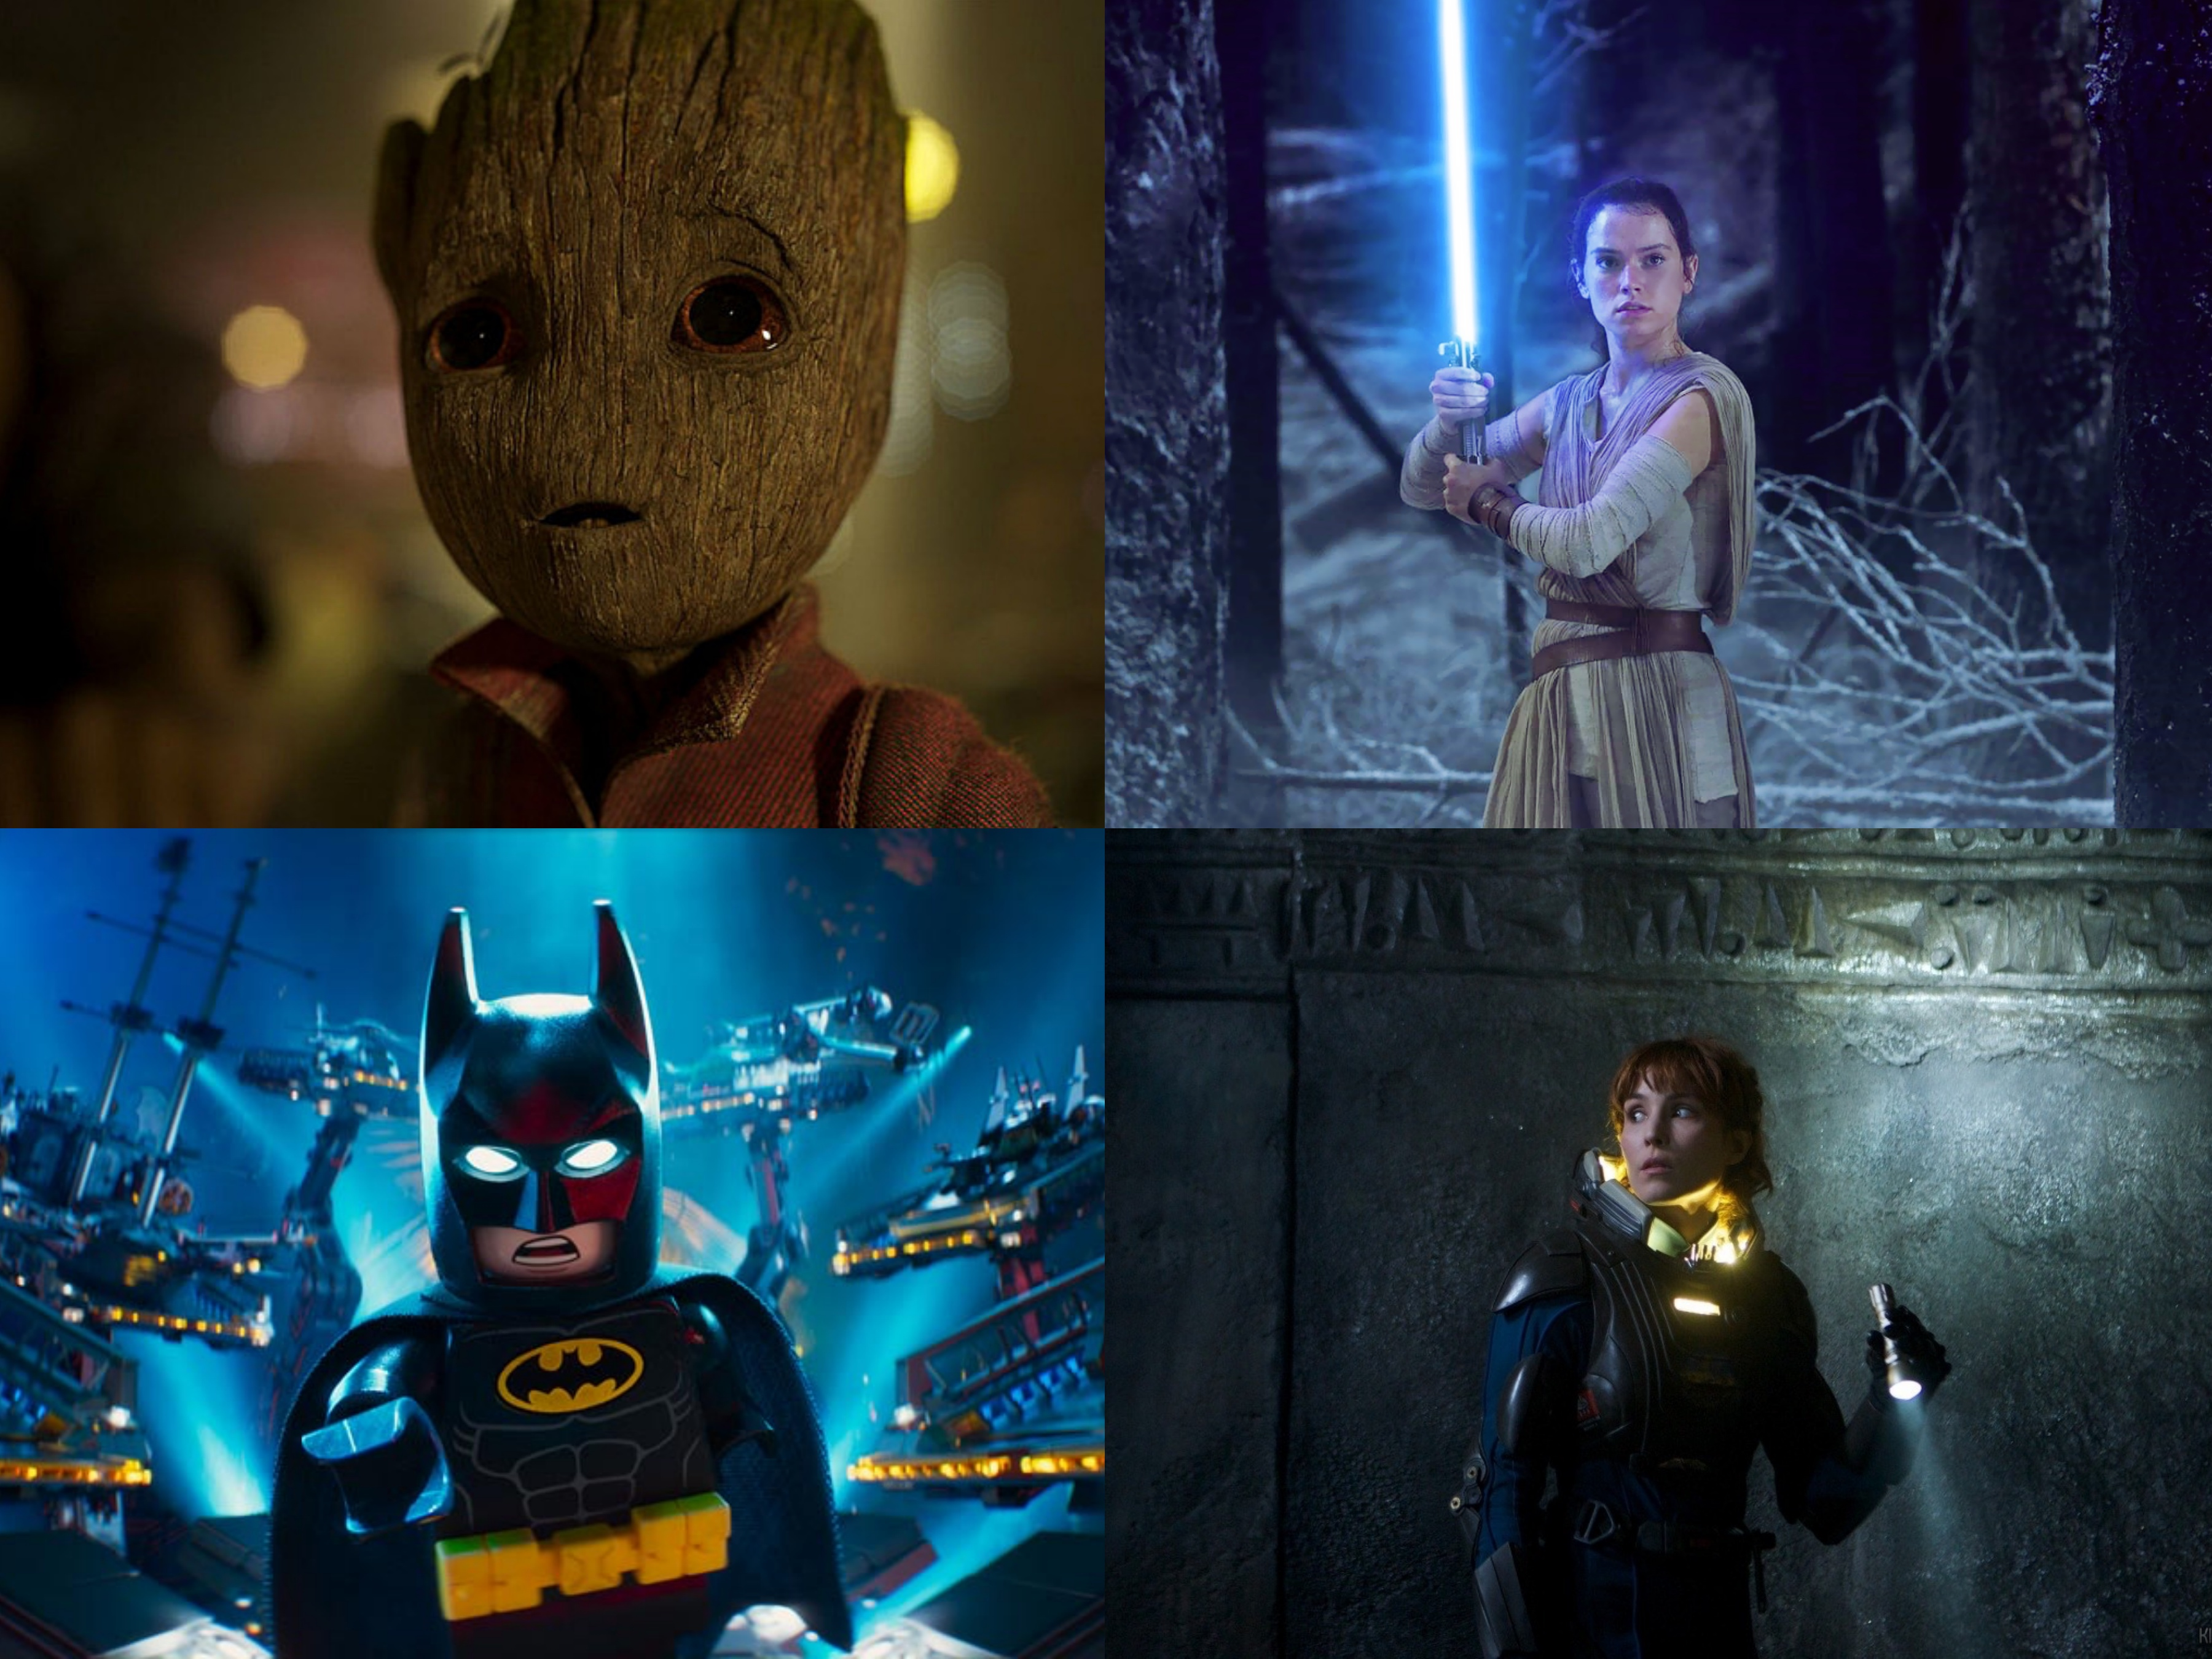 Above: Sequels, spin-offs, and prequels are set to hit theatres in 2017